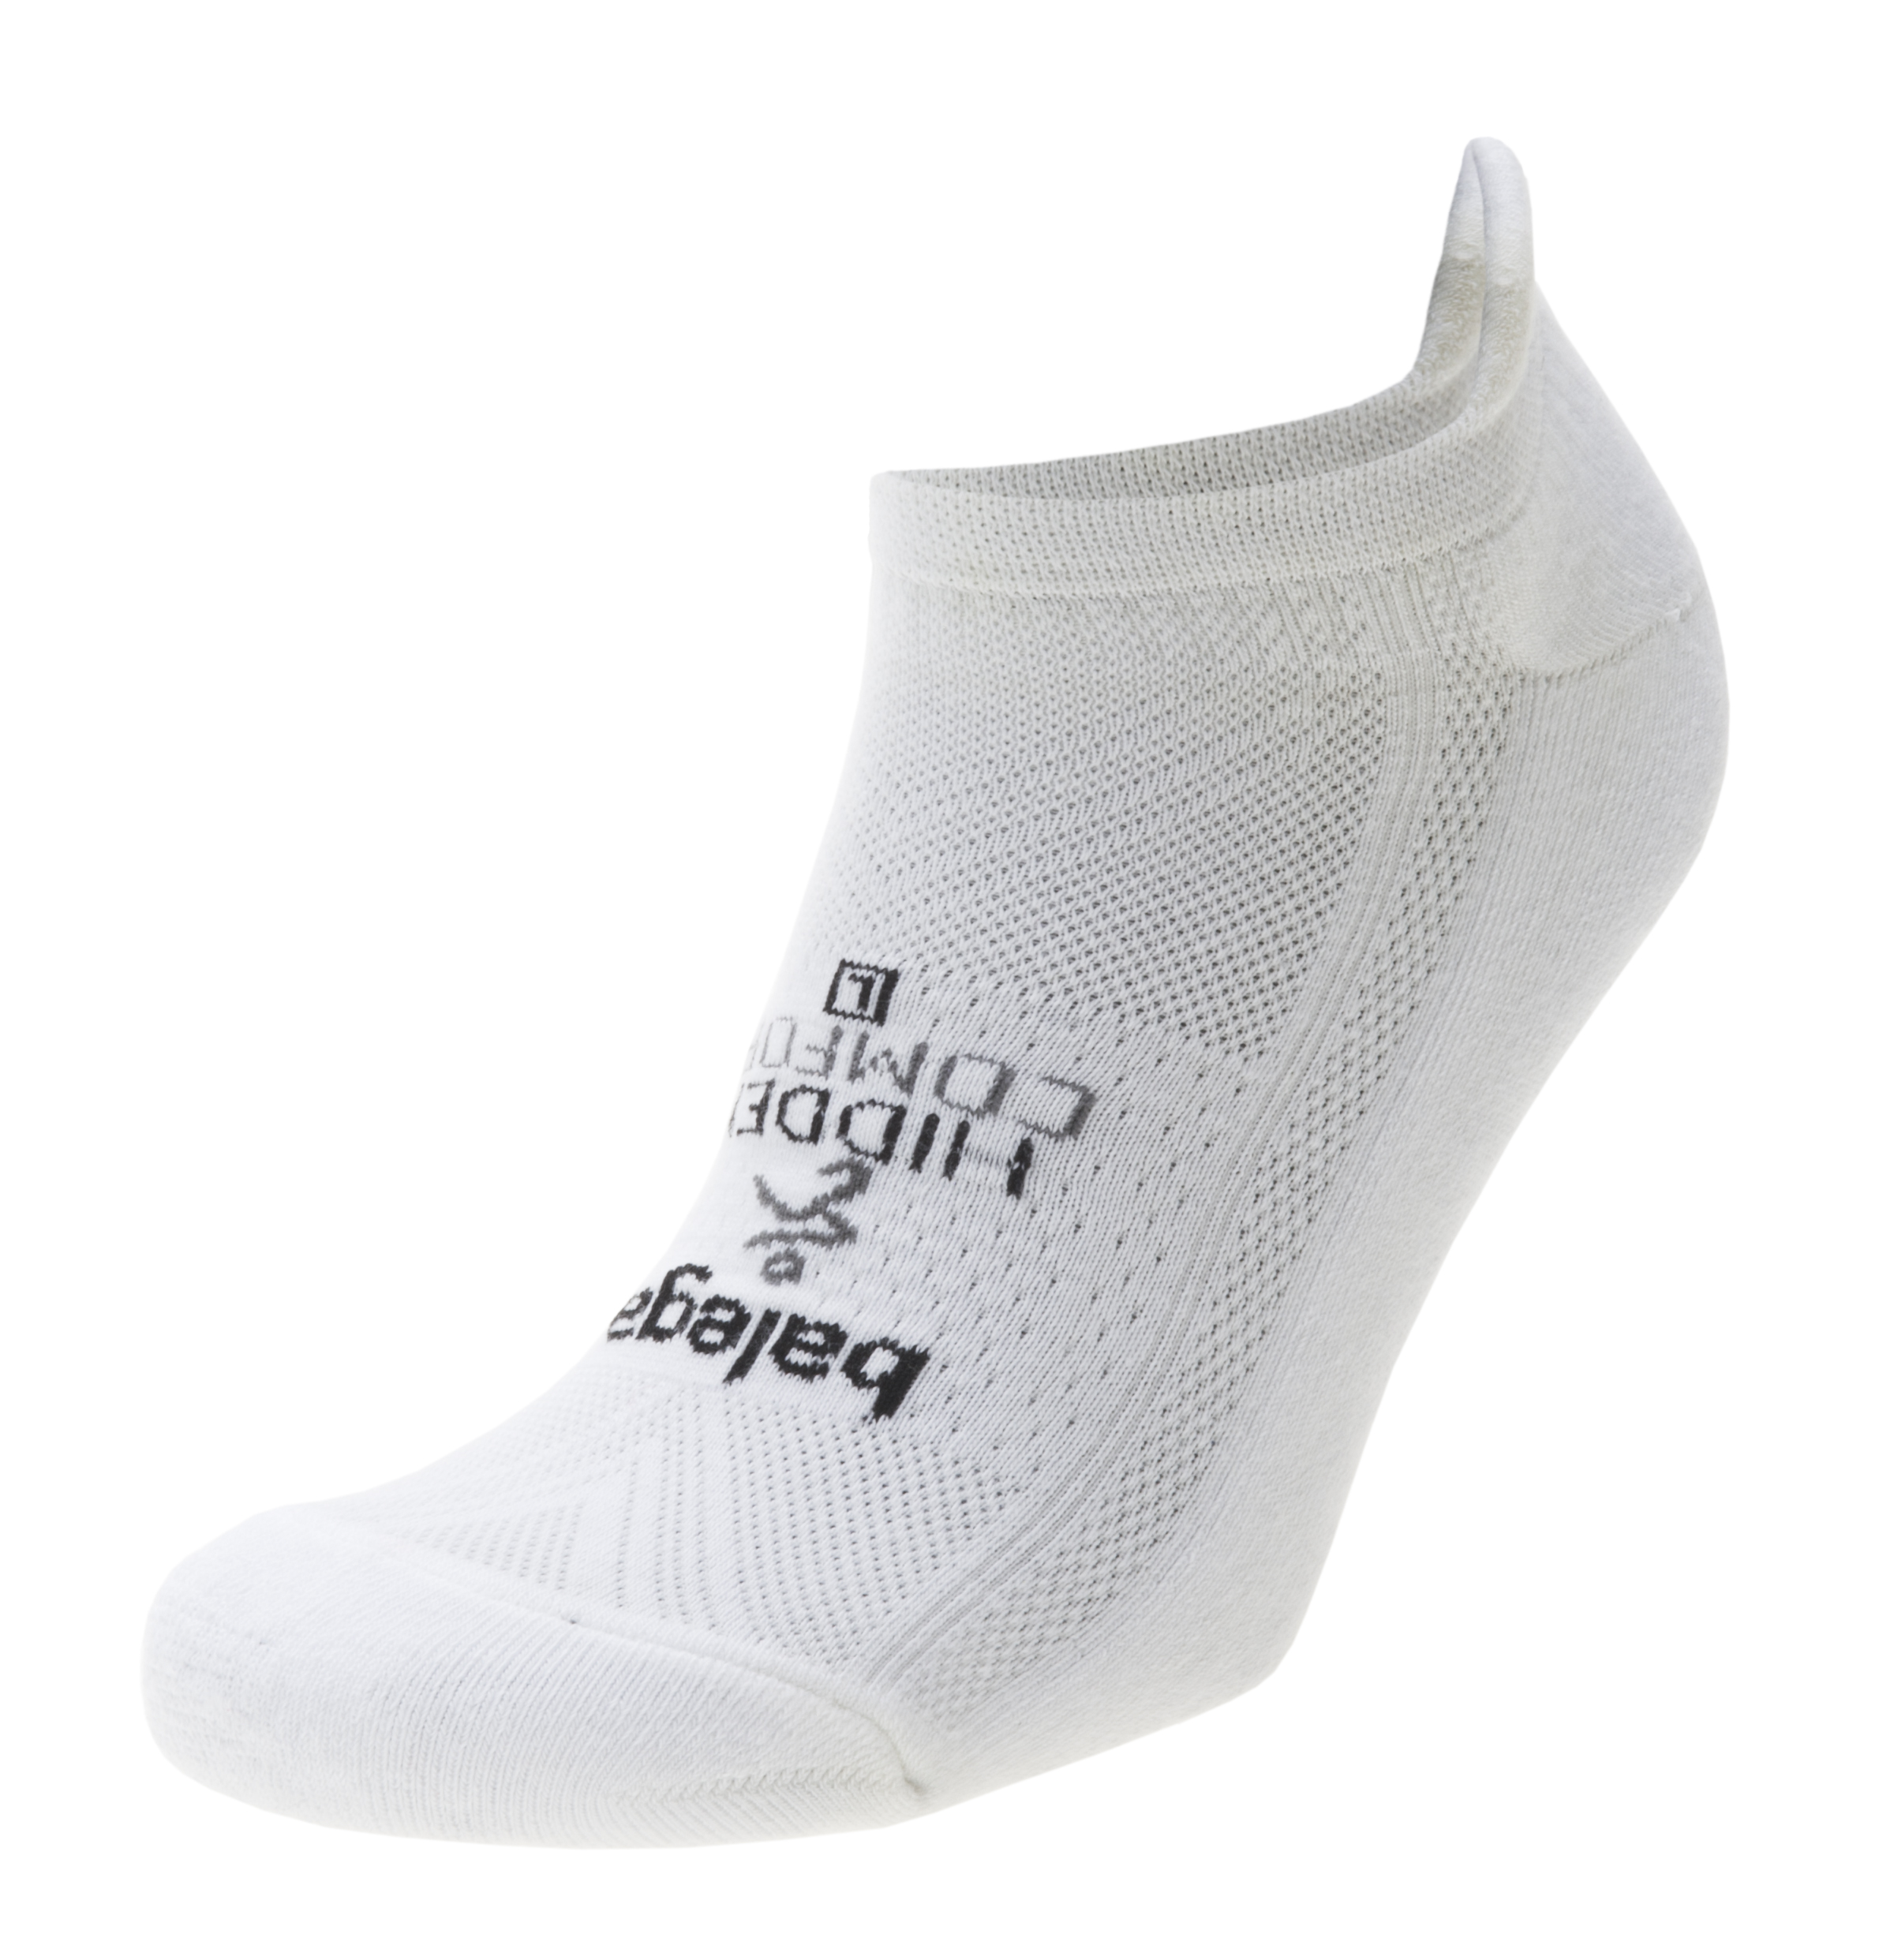 Balega's Hidden Comfort sock is my go to for high cushion when feet are feeling a little sore after a long run or workout. This is also my go to sock if I'm walking around town or on my feet for a long period of time.